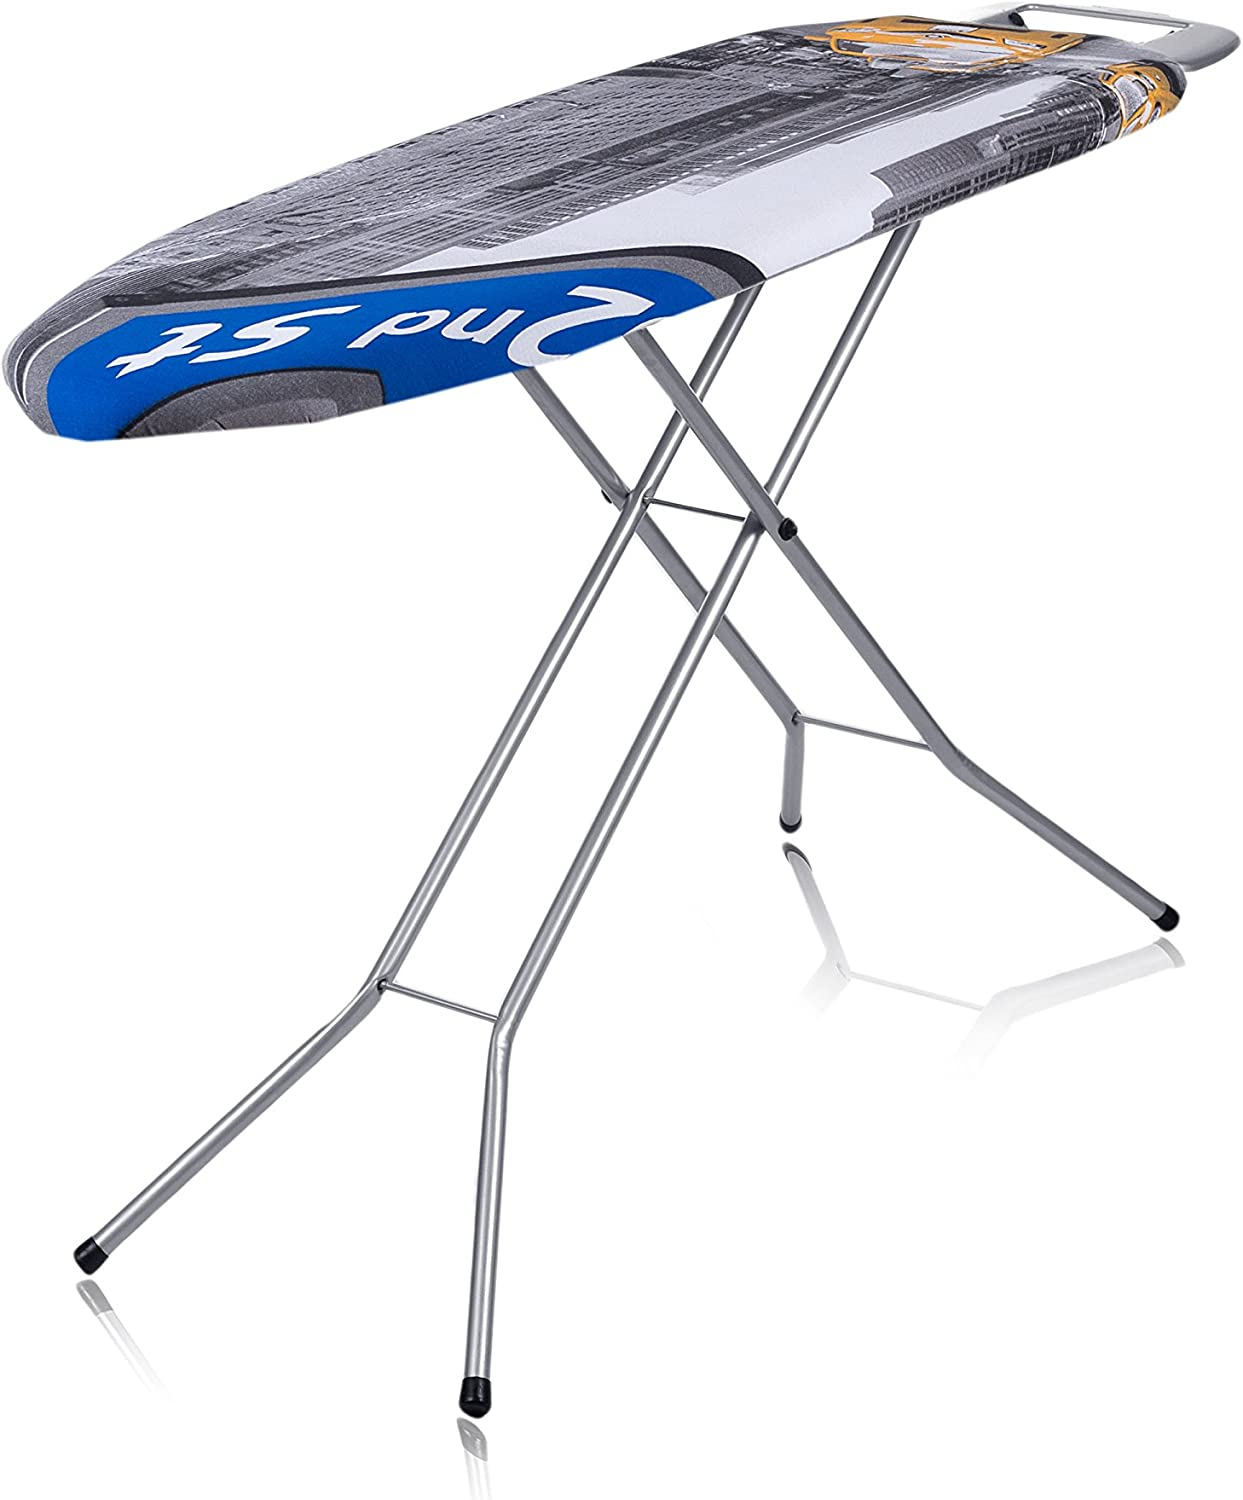 Premium Ironing Board Cover Thick Padding With Cotton Foam And Felt Pad Easy Fit